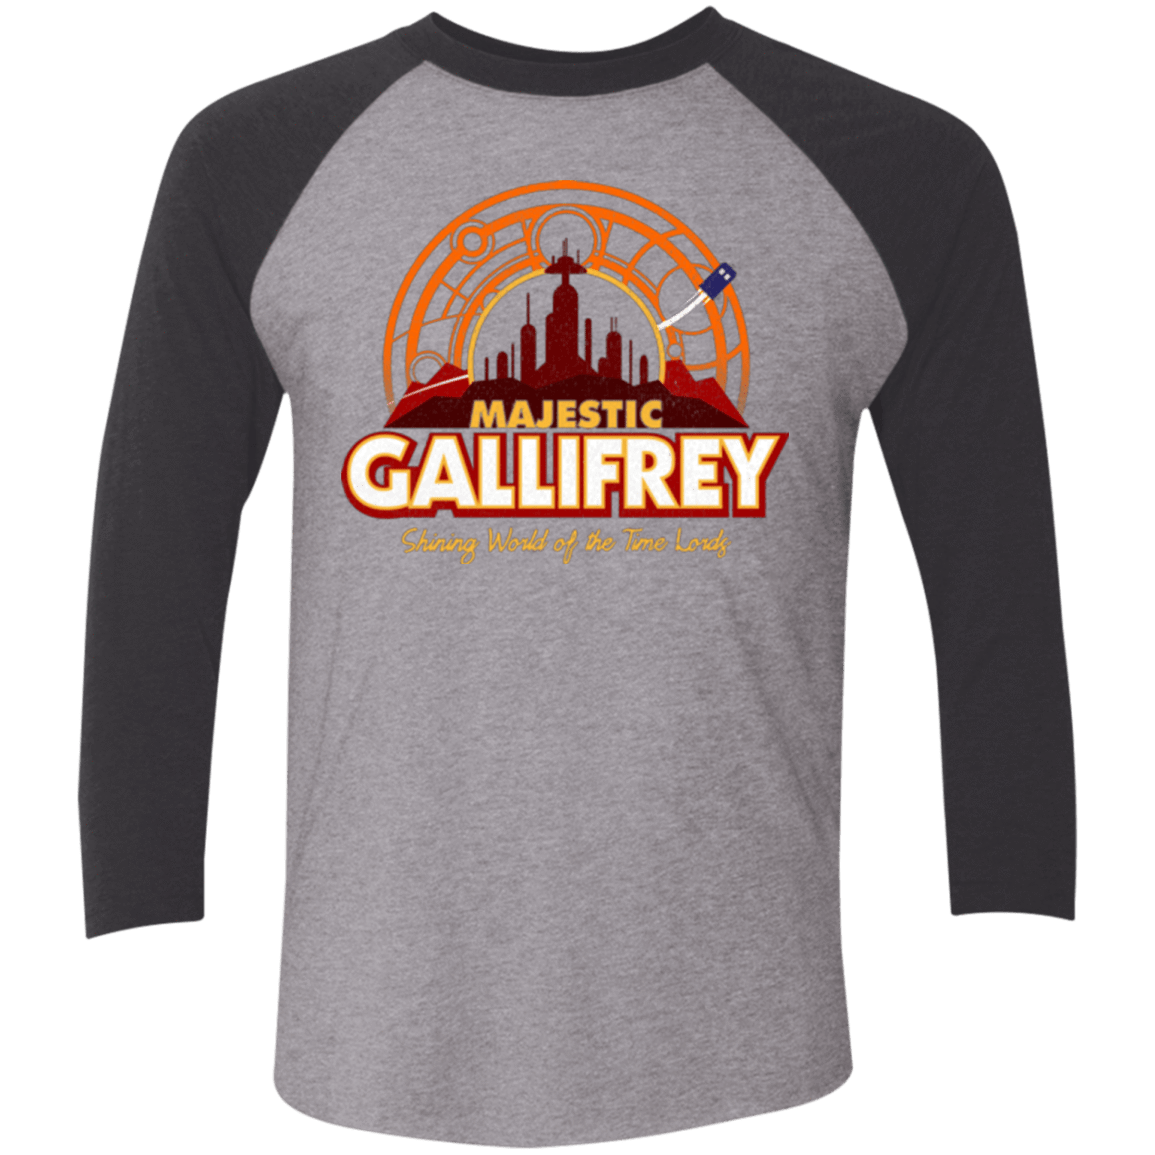 T-Shirts Premium Heather/ Vintage Black / X-Small Majestic Gallifrey Triblend 3/4 Sleeve